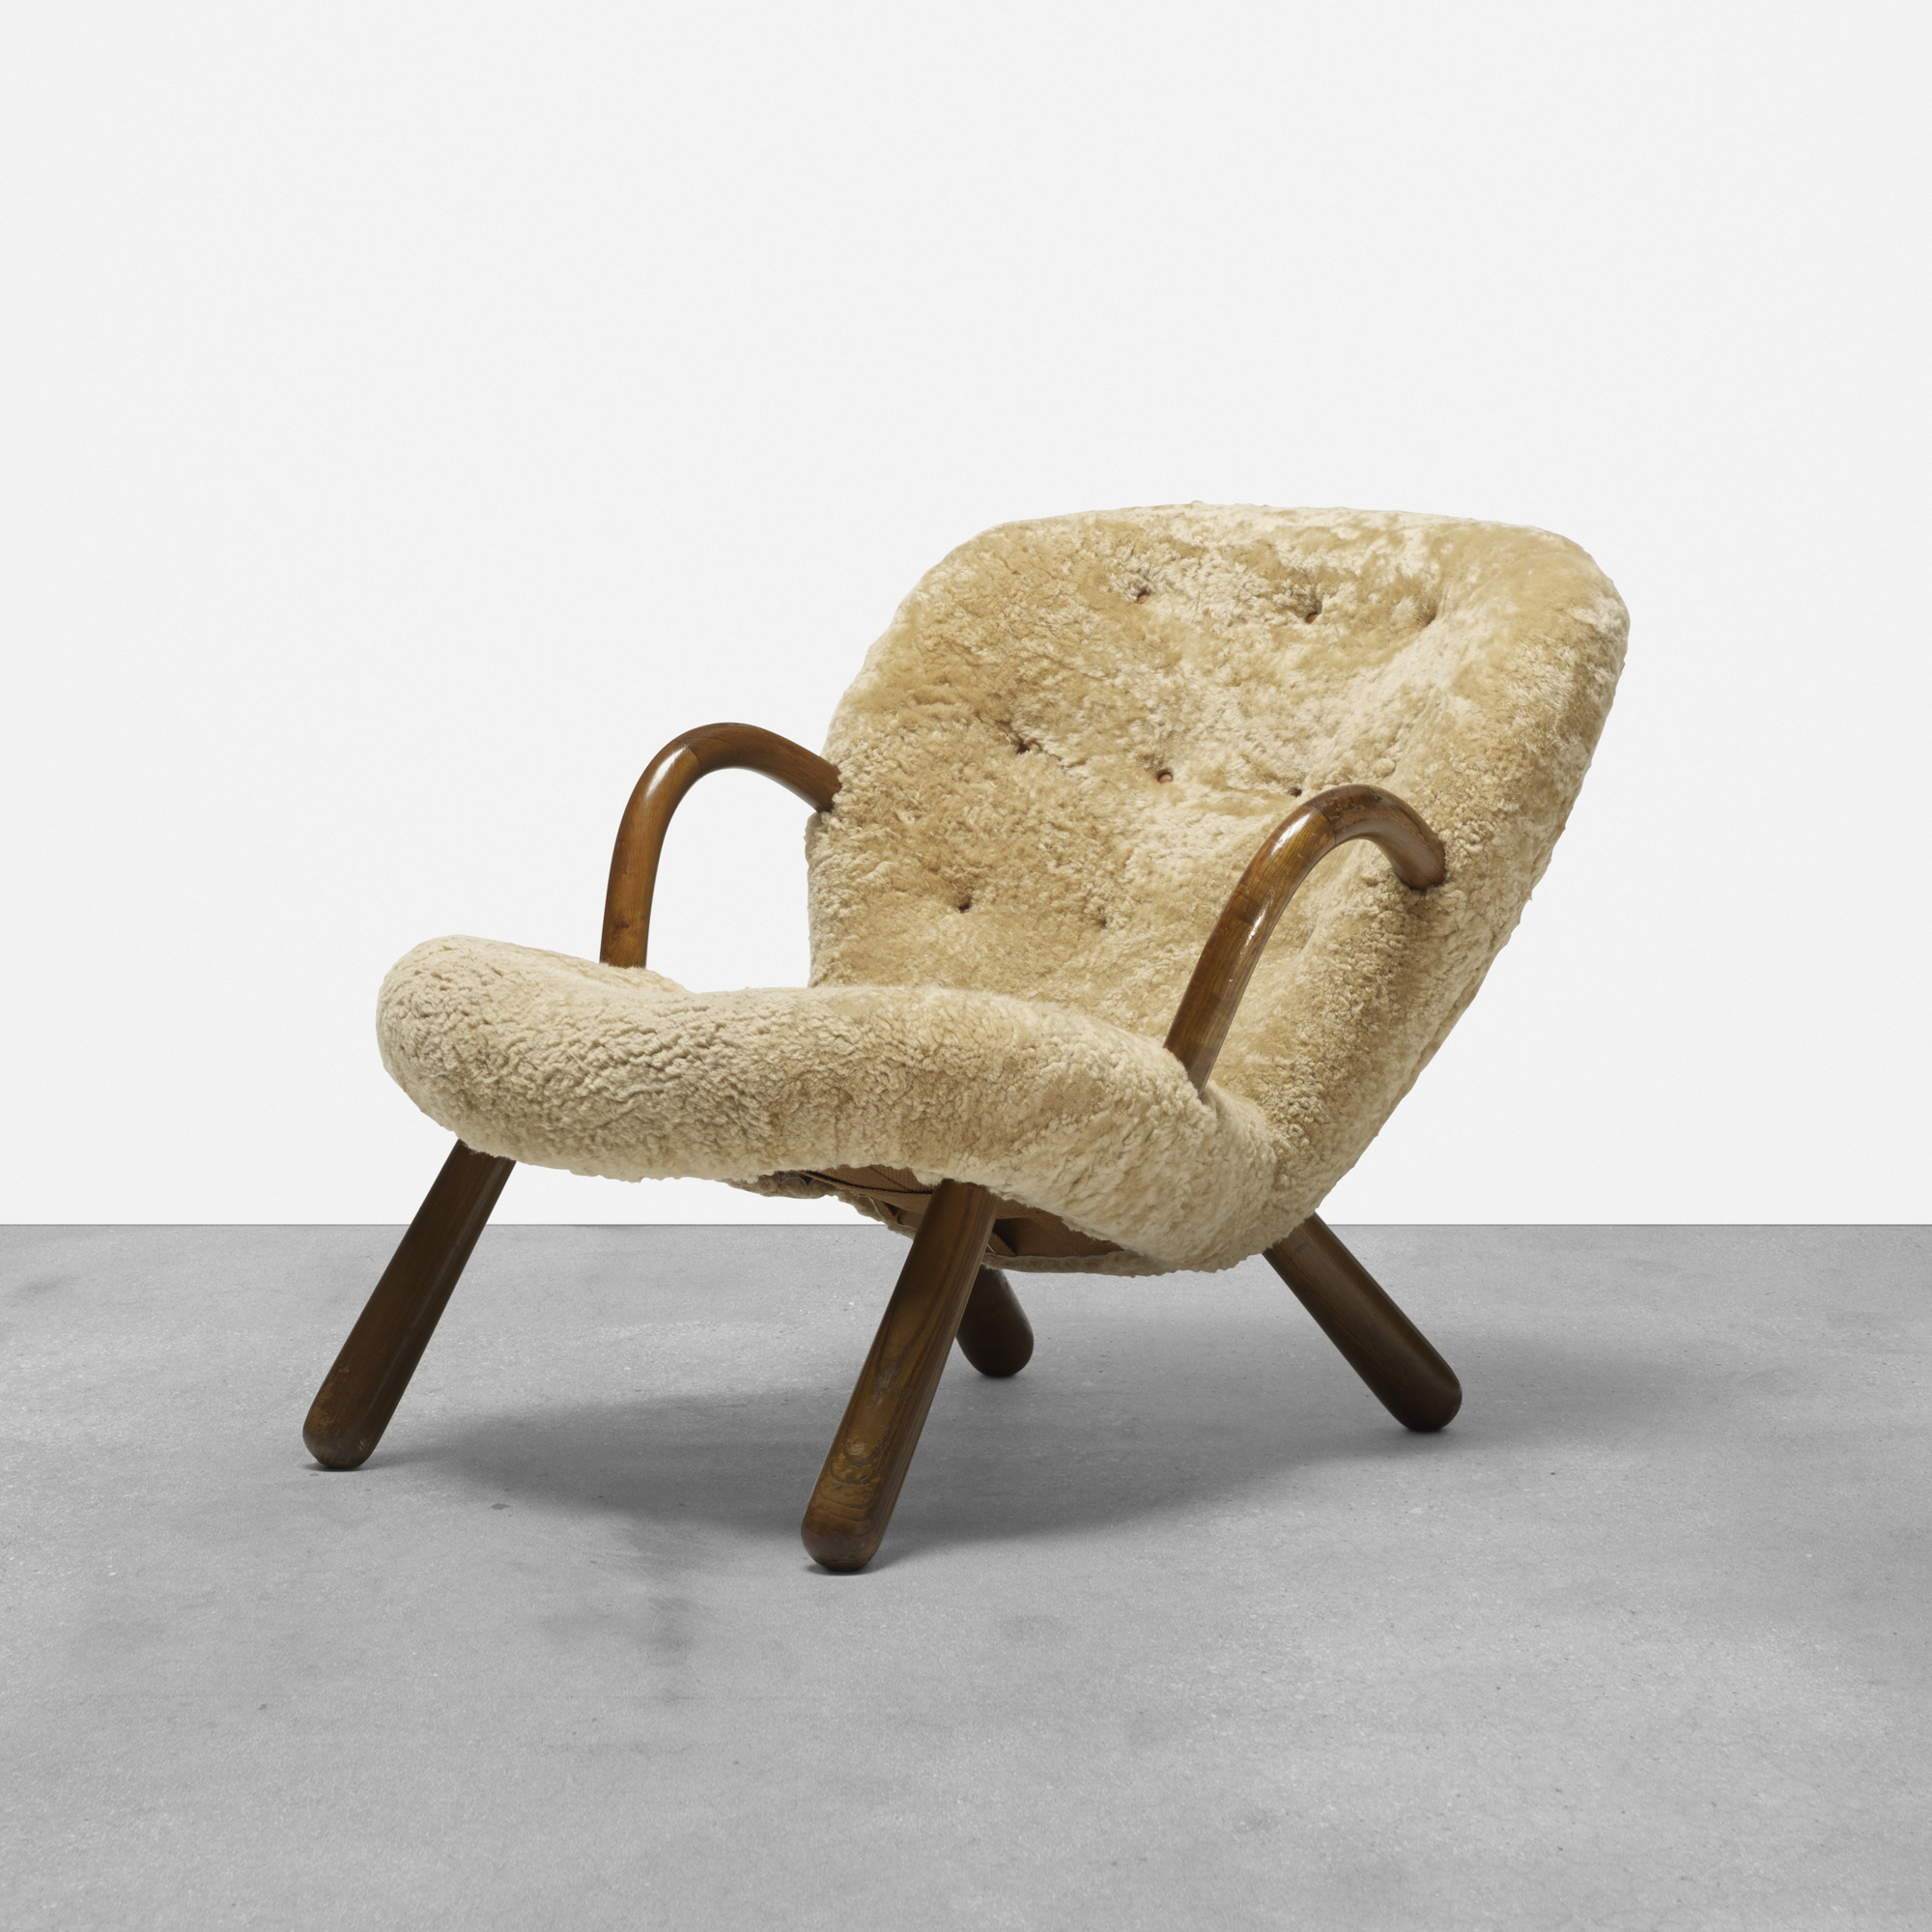 375: Philip Arctander / lounge chair (1 of 2)